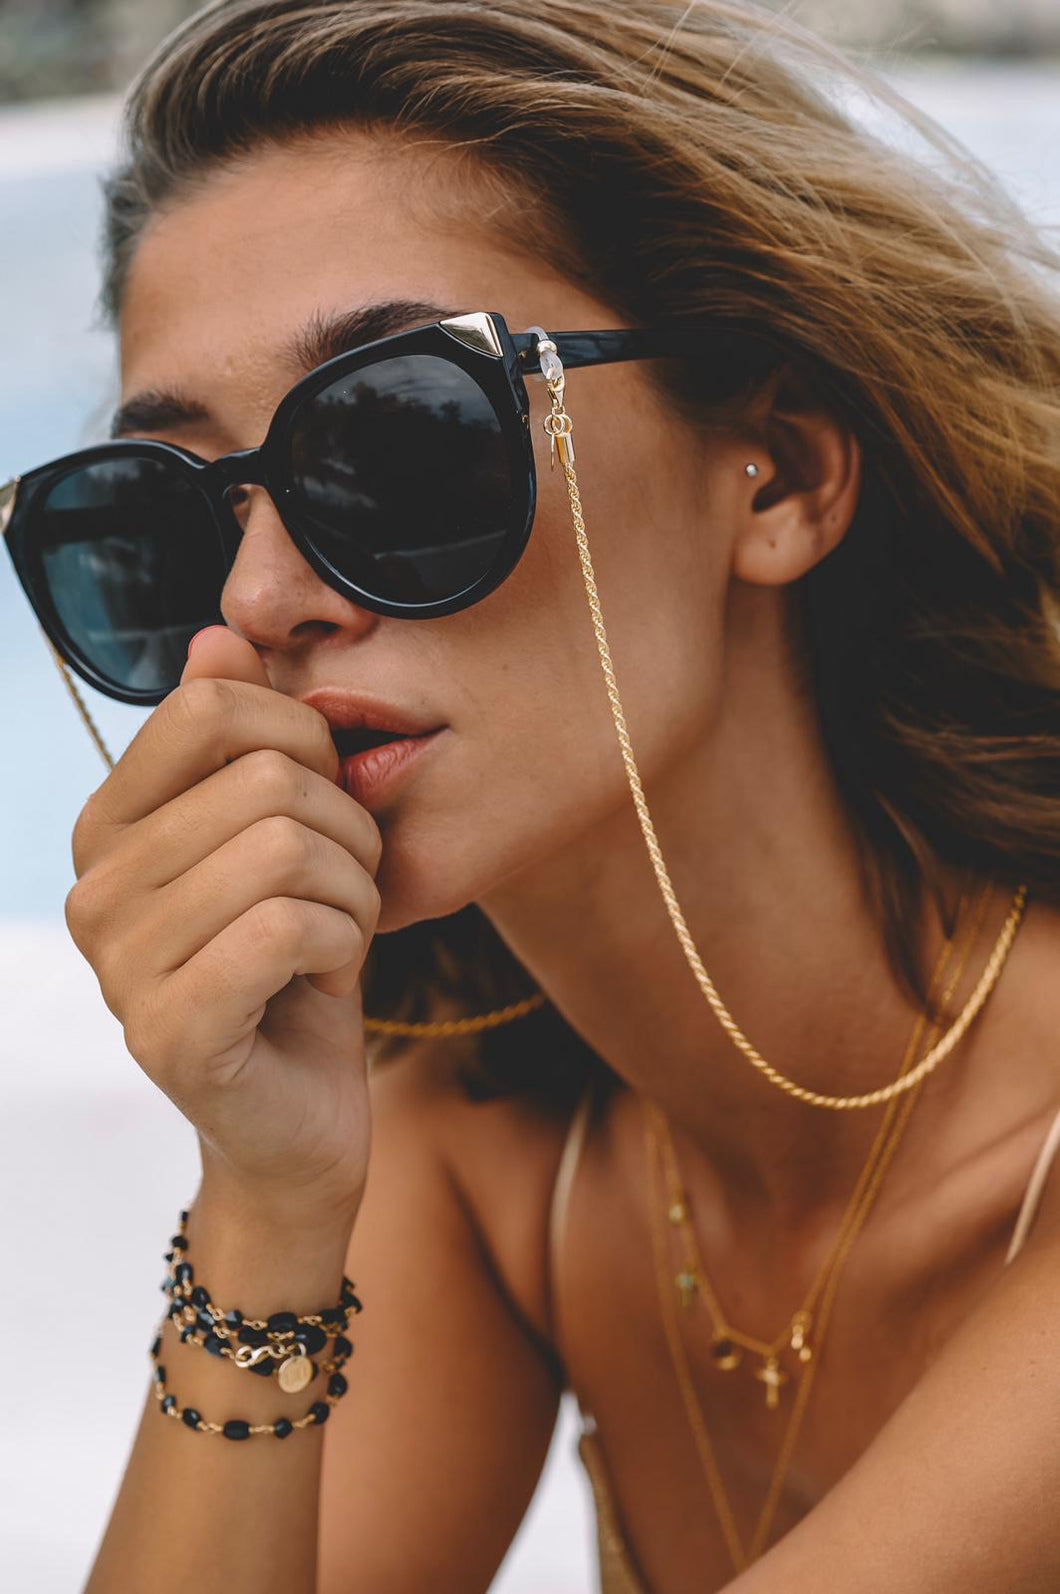 EMAS LUX GOLD sunglasses chain